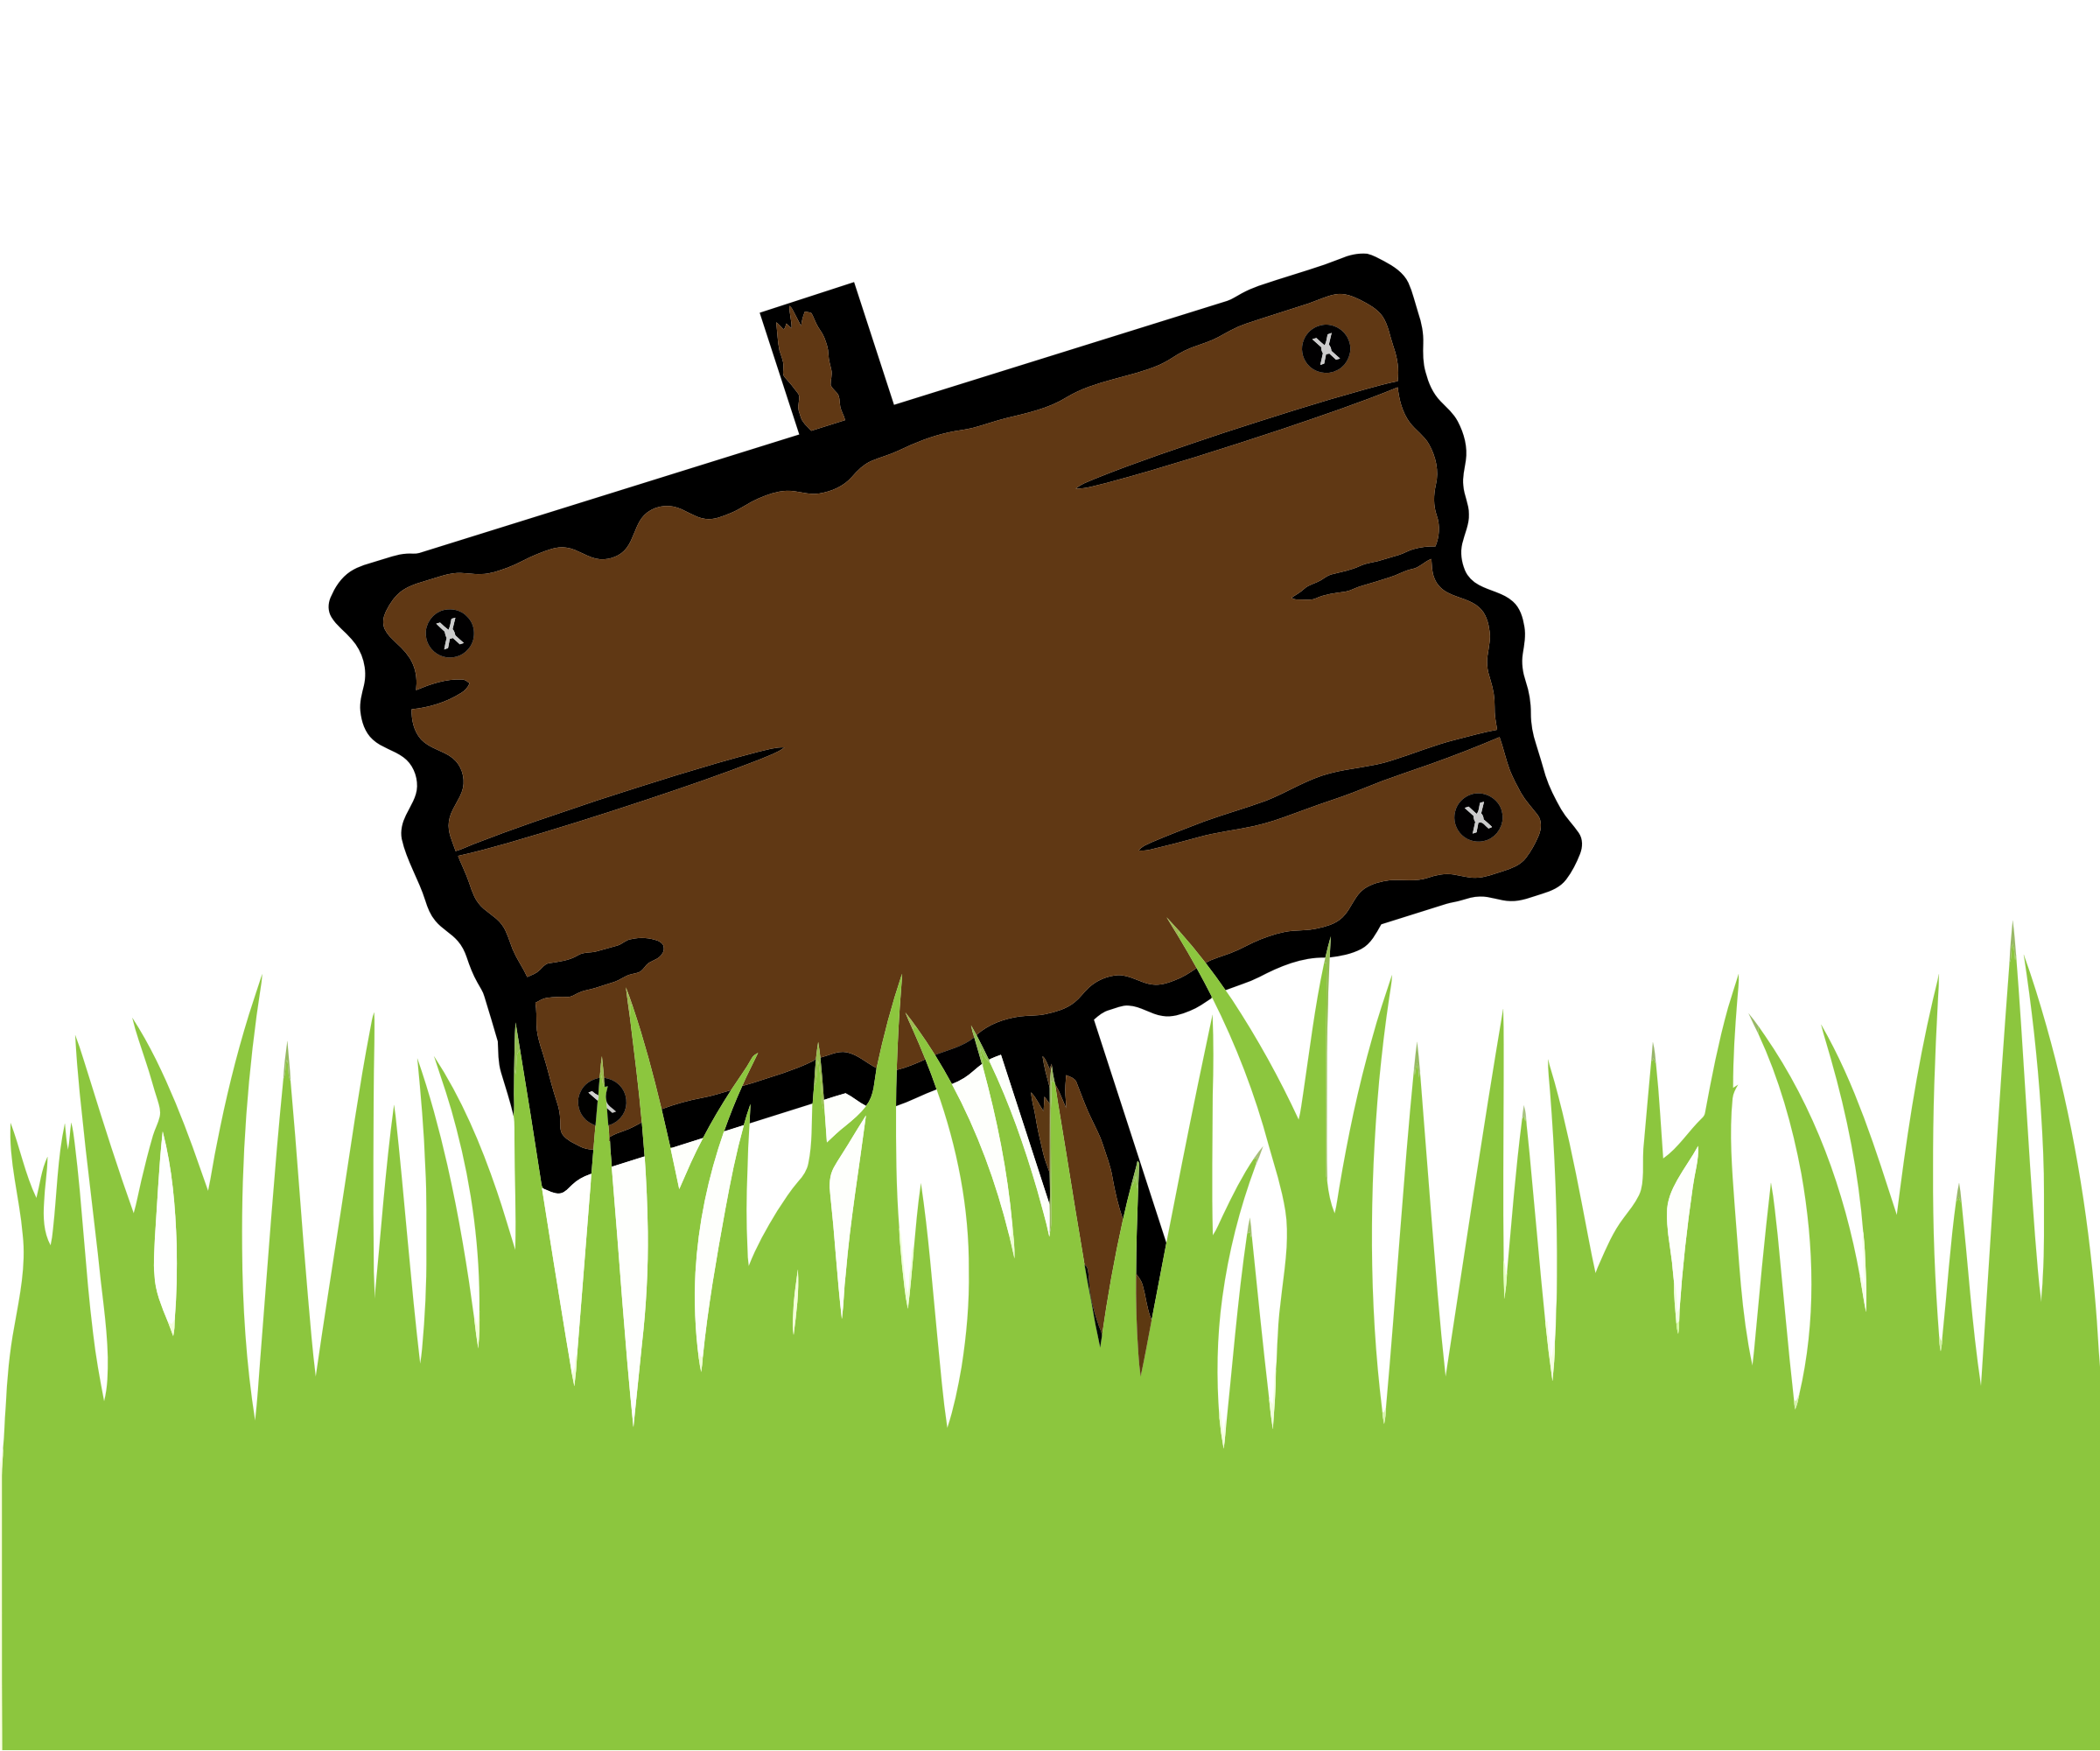 Wooden Sign In Grass by GDJ